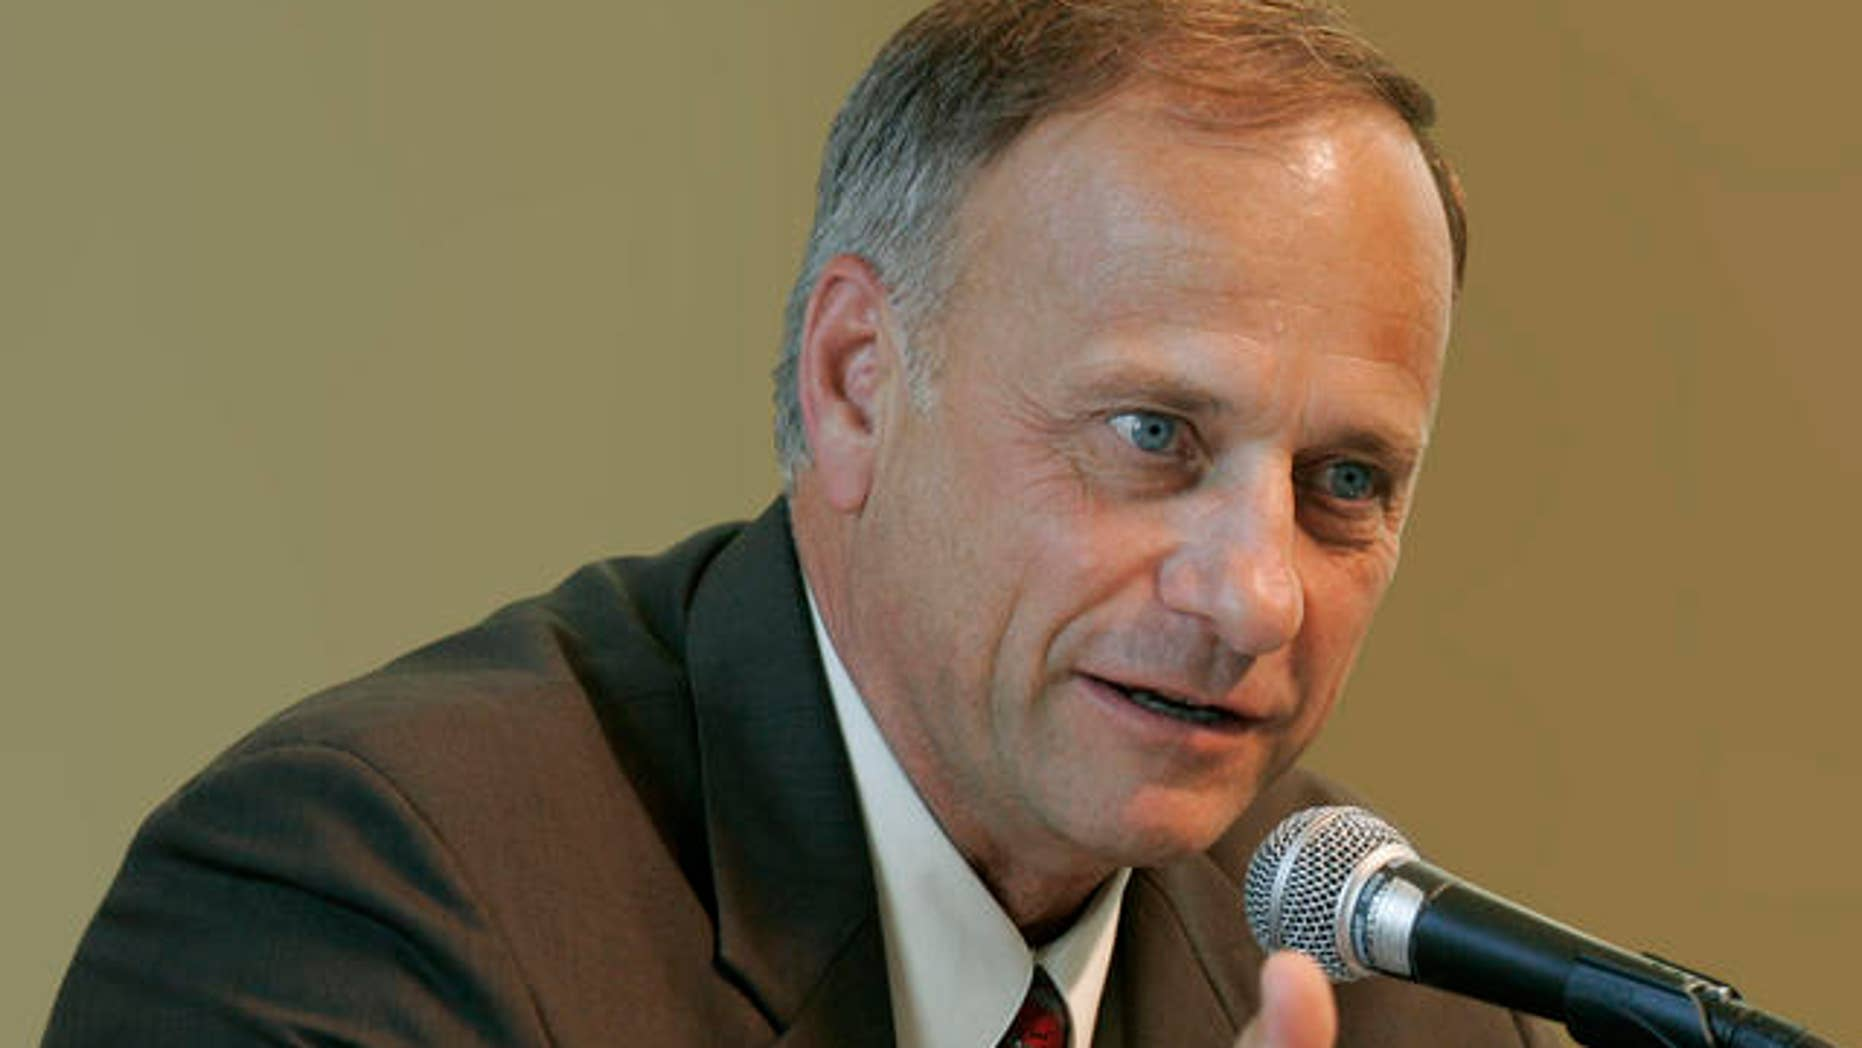 U.S. Rep. Steve King, R-Iowa, speaks during a farm bill congressional field hearing, Monday, July 31, 2006, at Dordt College in Sioux Center, Iowa.  King doesn't shy from controversy, and his views have paid off with praise from conservatives _ and disdain from critics. In his rural, western Iowa congressional district, King remains a popular two-term congressman. (AP Photo/Charlie Neibergall)